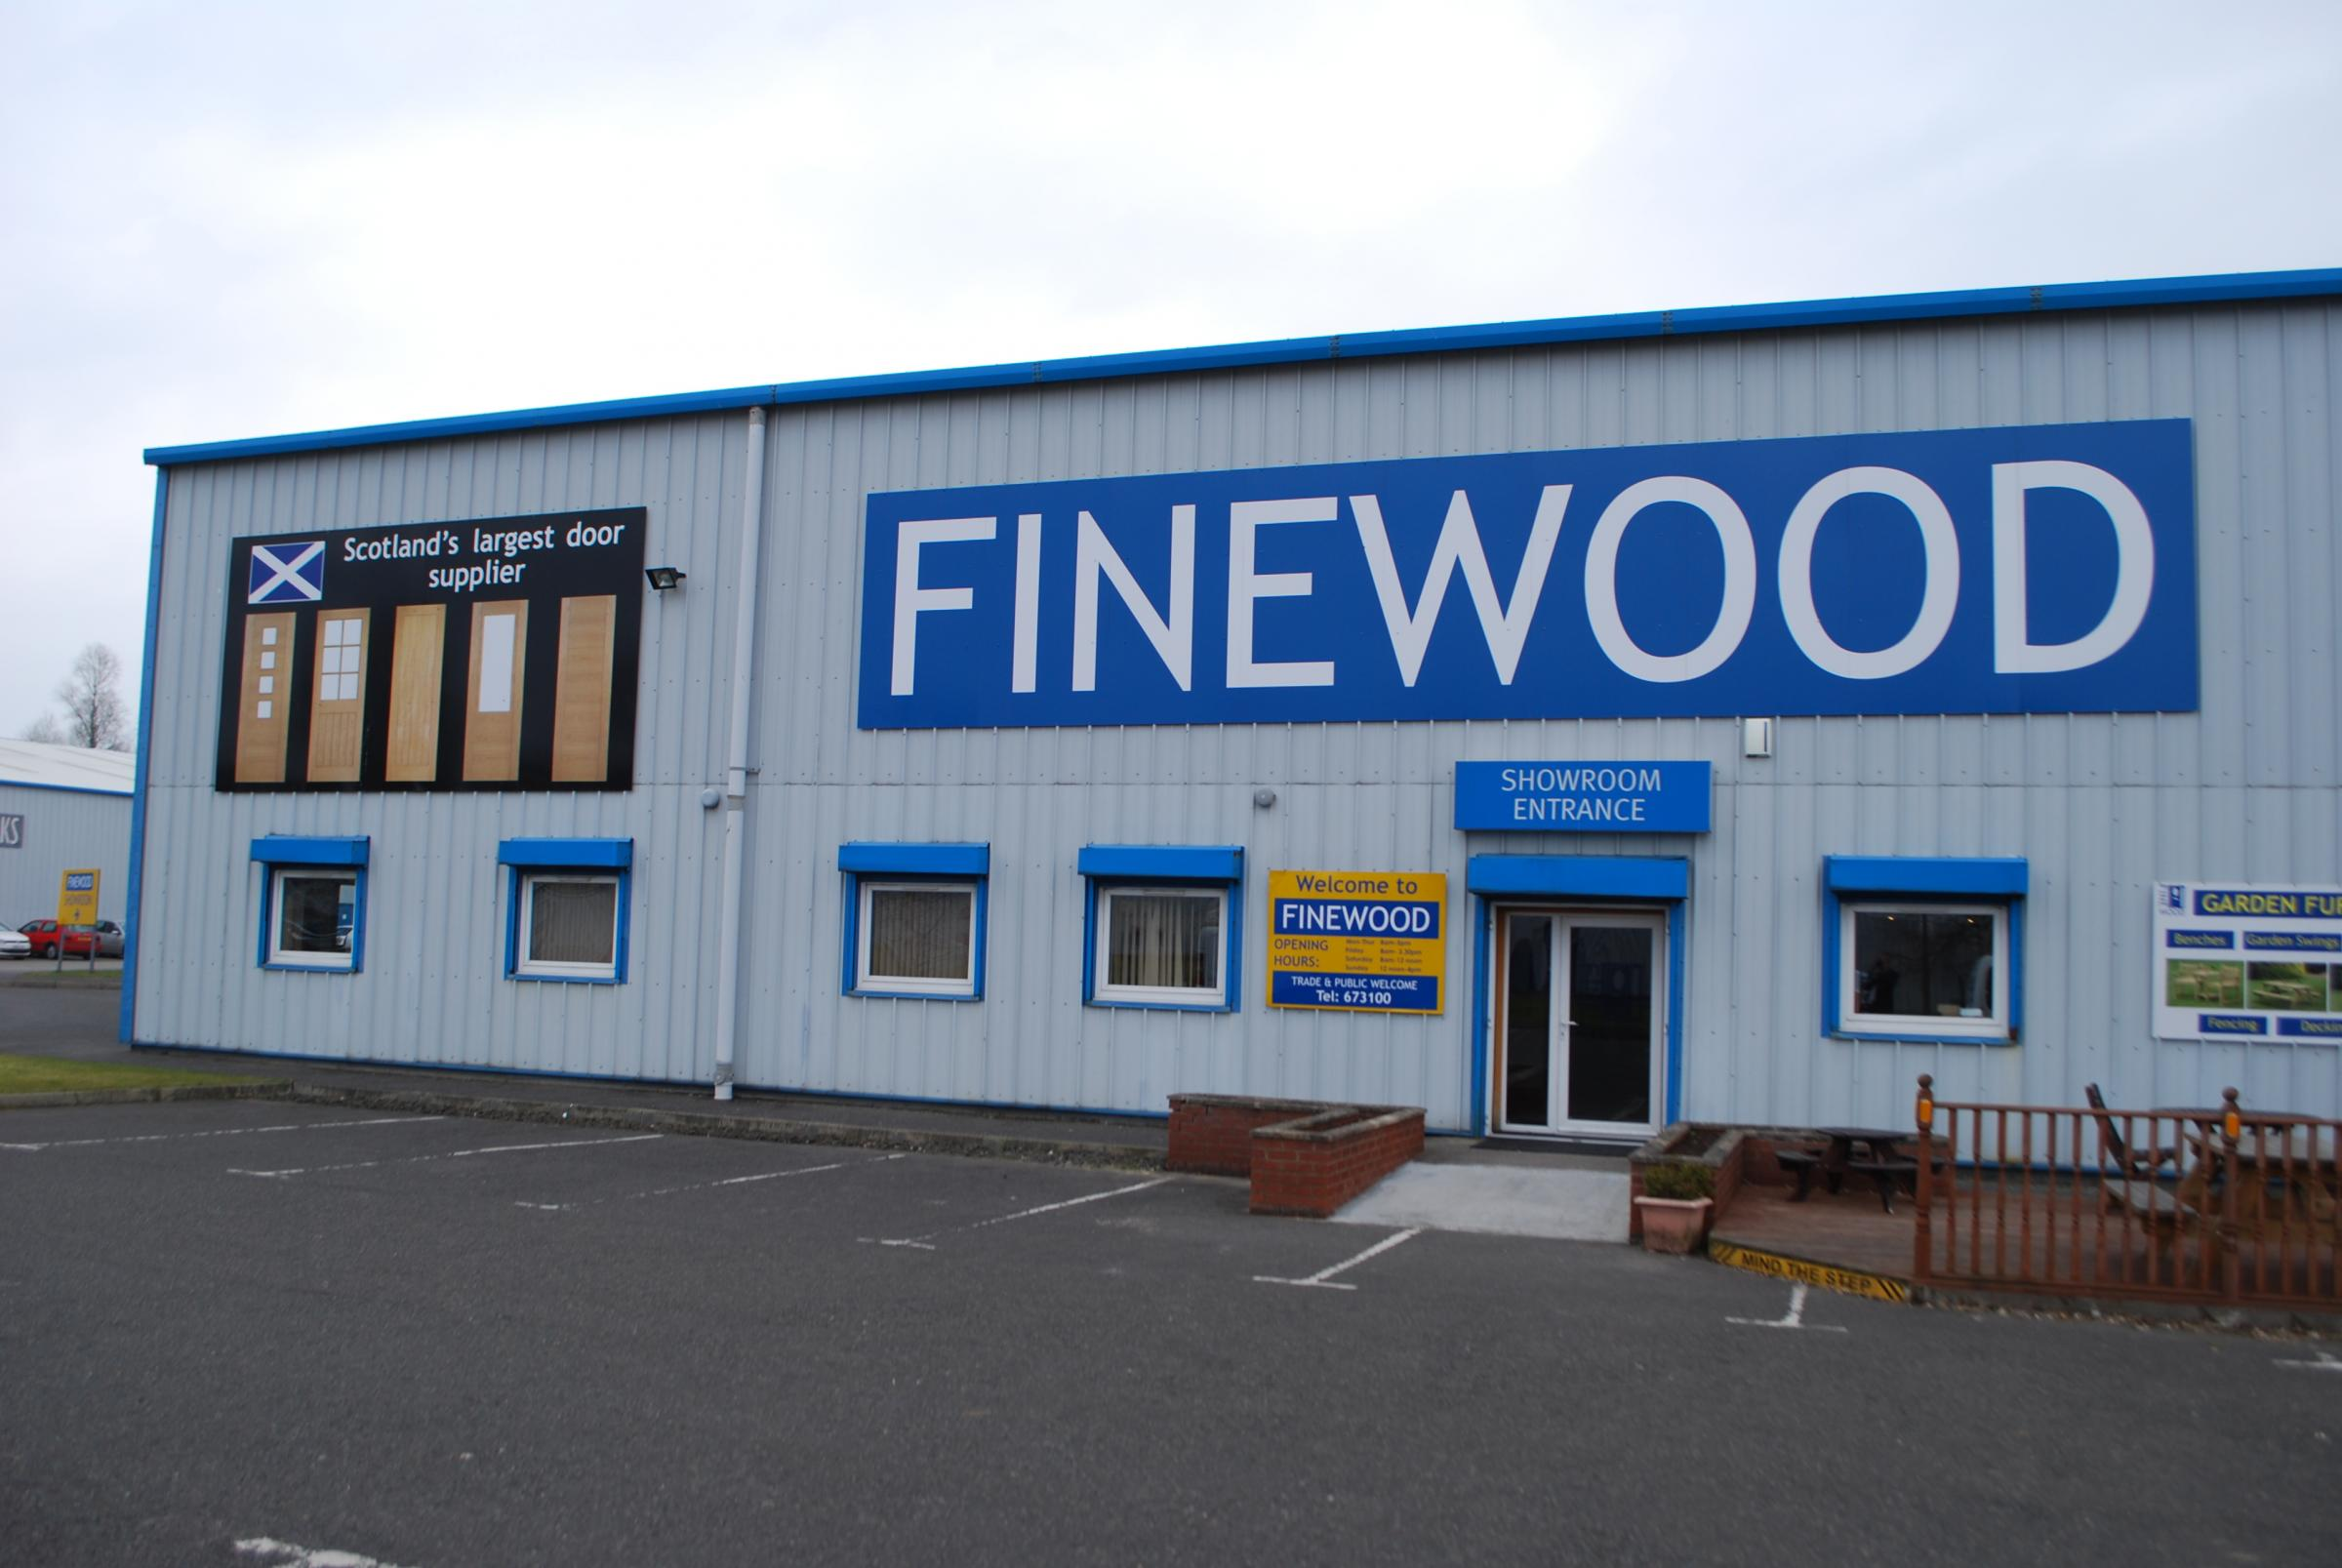 Falkirk door businessm Finewood is set for expansion. & Falkirk\u0027s Finewood ready to open doors to expansion | HeraldScotland